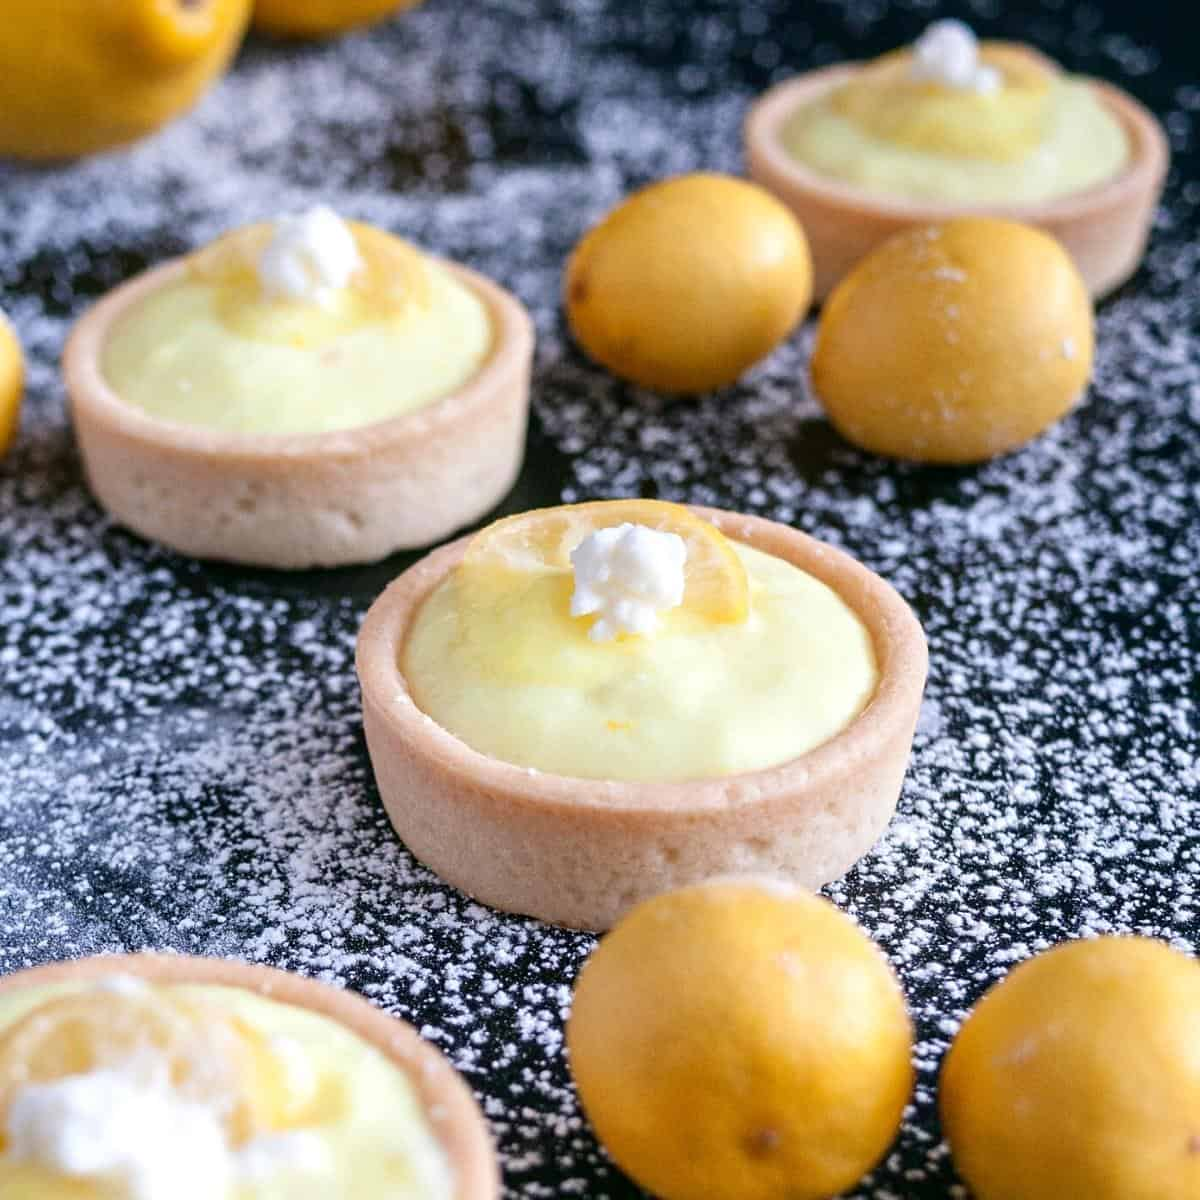 Tartlets dusted with powdered sugar.